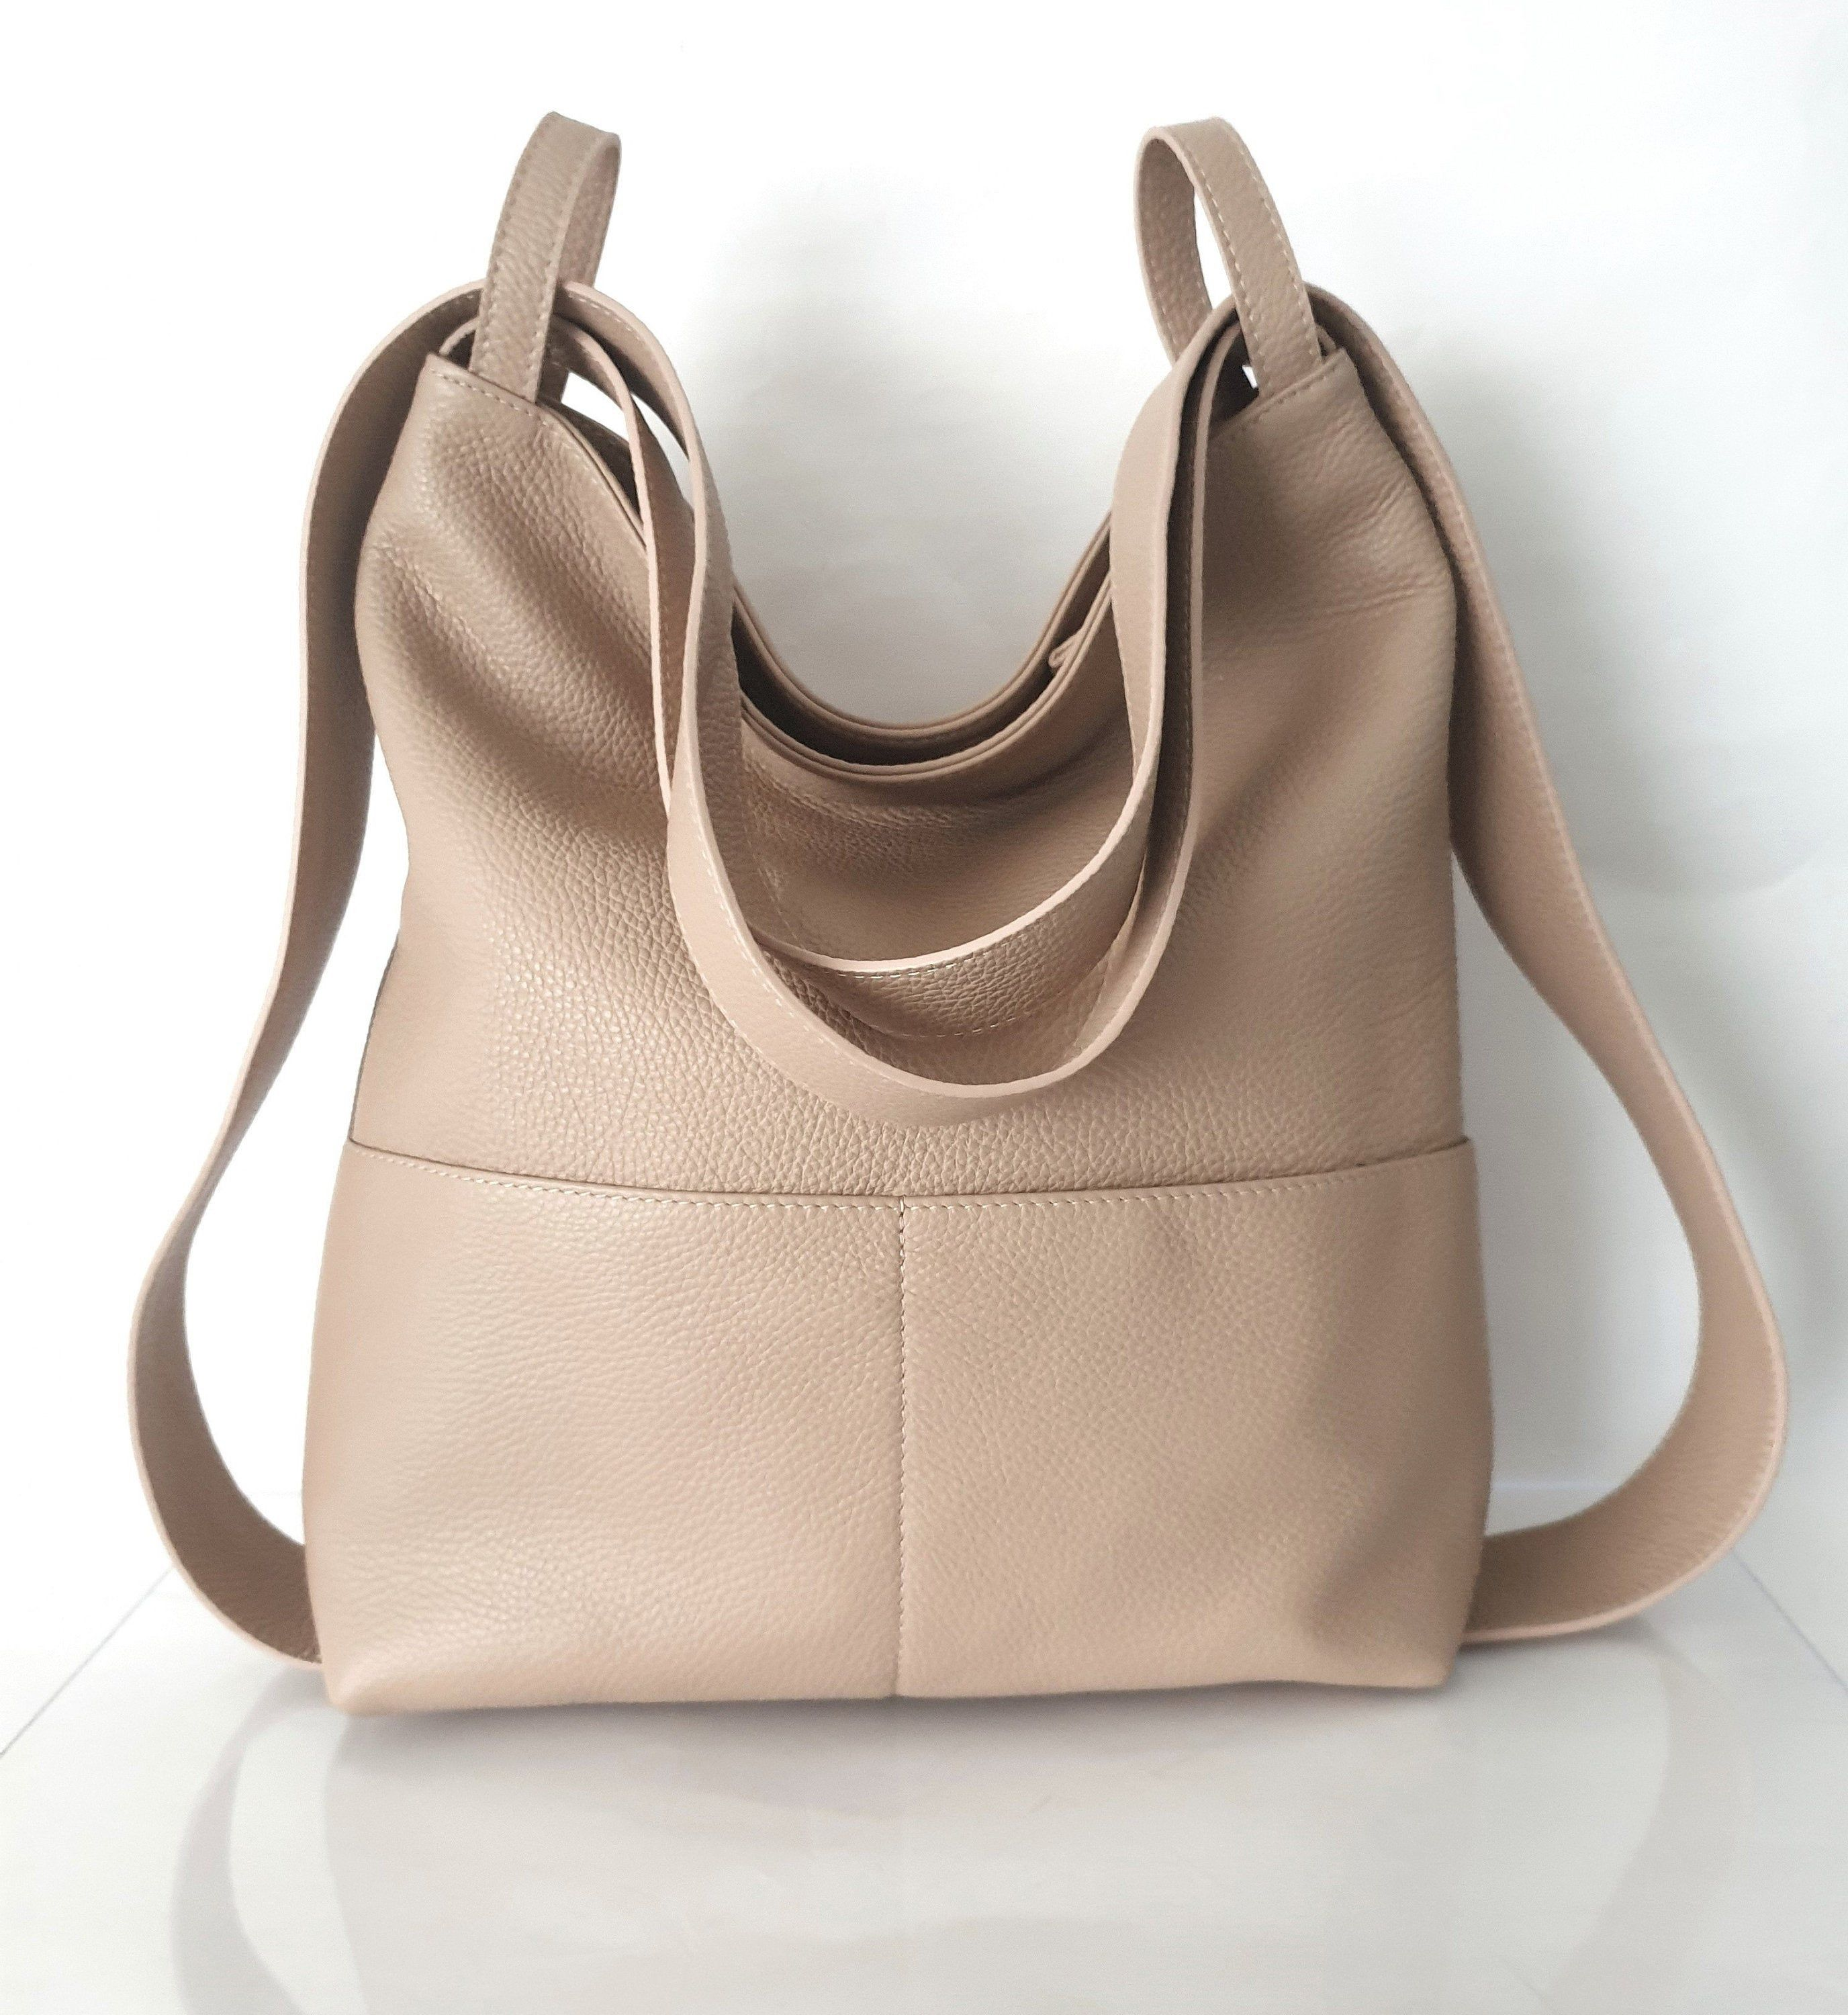 Borse I Bag.Powder Leather Hobo Handbags For Women Large Shoulder Bag Convertible Purse Backpack With Pockets Leather Fashion Anti Theft For Travel In 2020 Leather Hobo Handbags Handmade Bags Backpack Bags